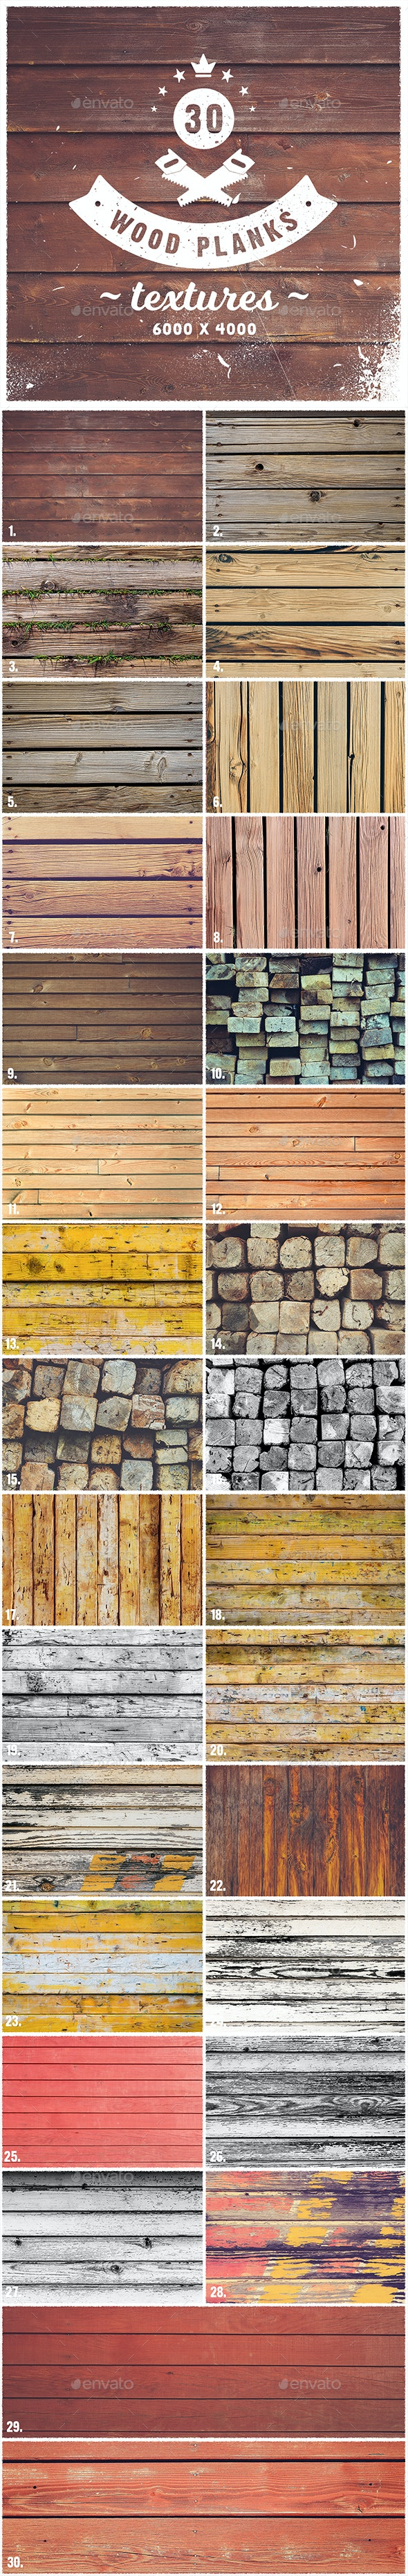 30 Wood Planks Textures by webcombo | GraphicRiver